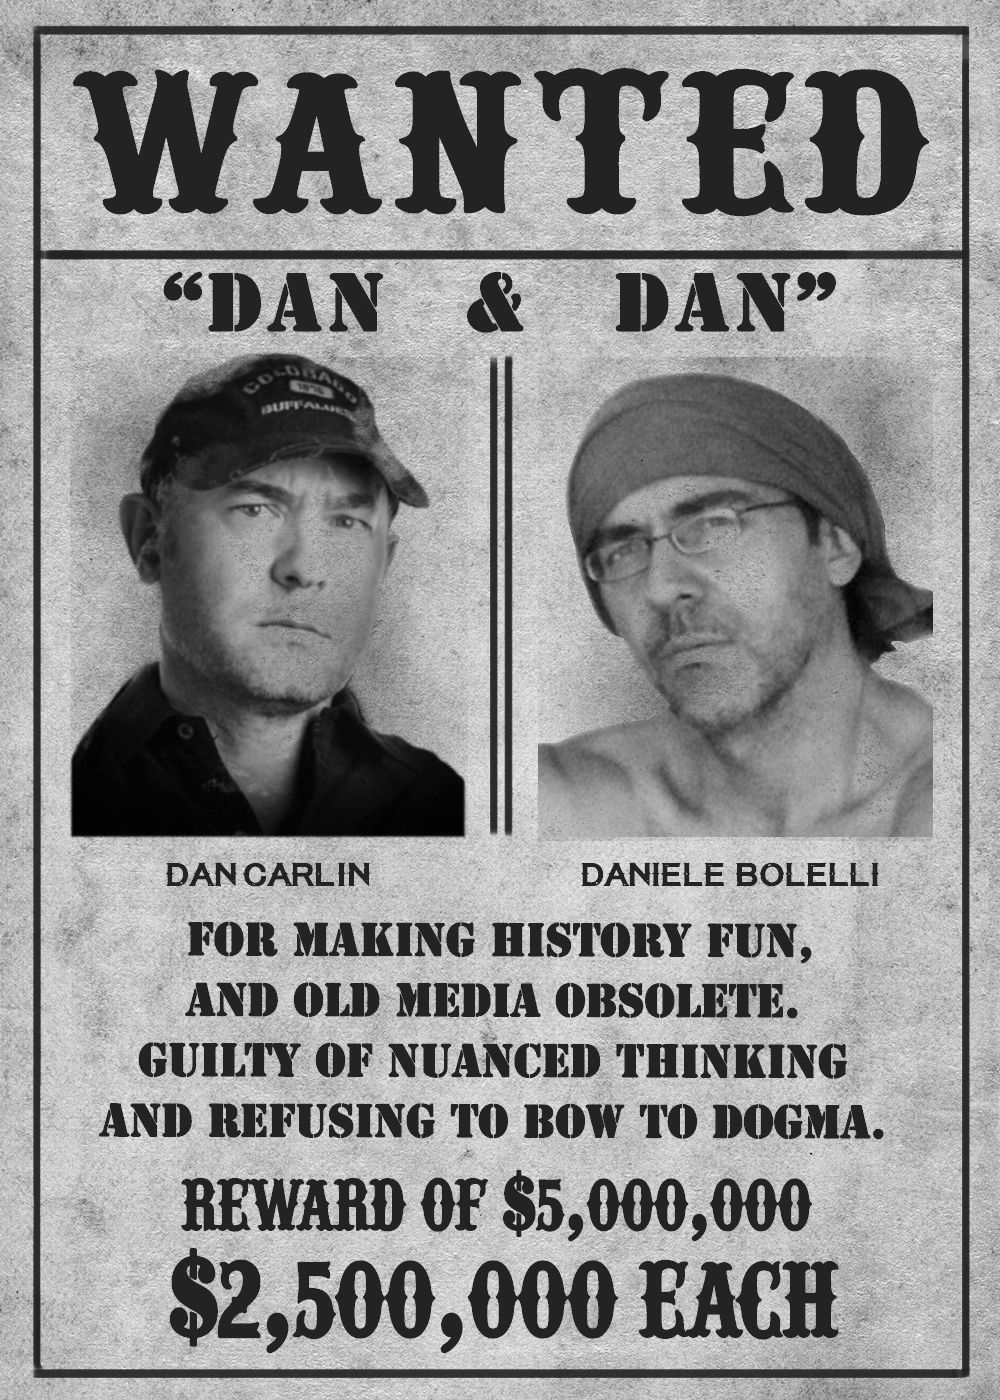 EPISODE 19 Featuring Dan Carlin